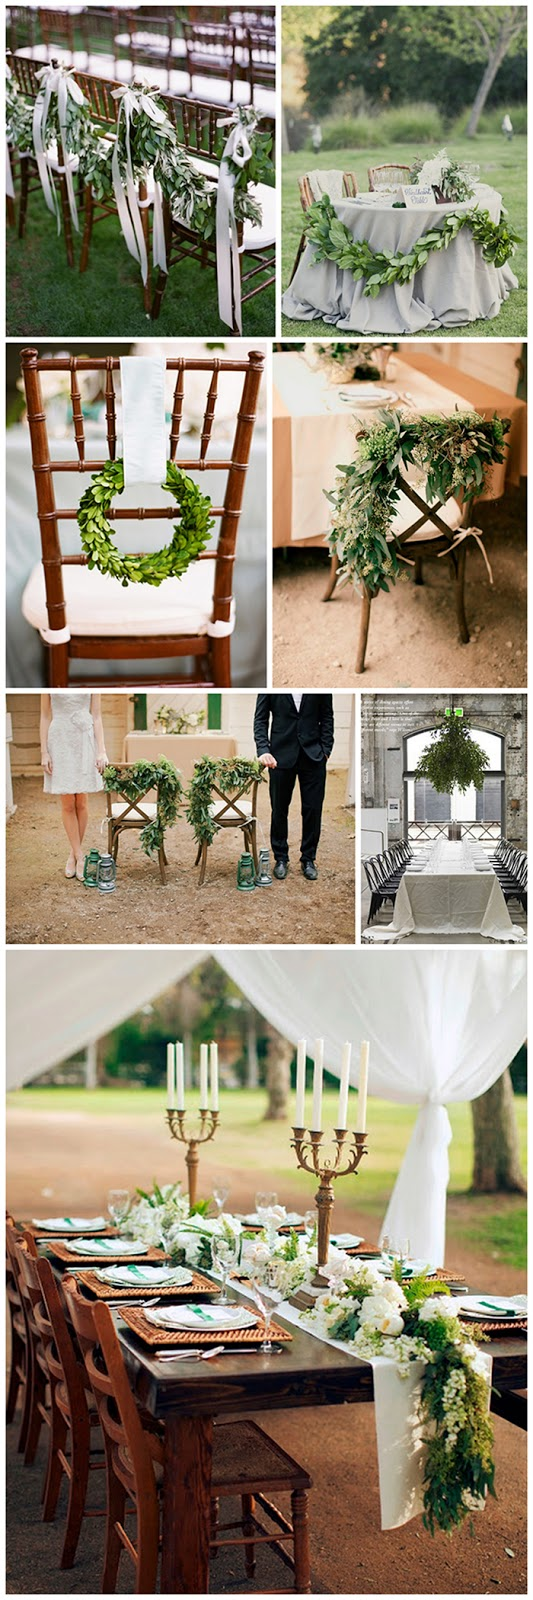 adding greenery to your table and chair decor instantly ups the chic value in your wedding or event | via Oh Lovely Day